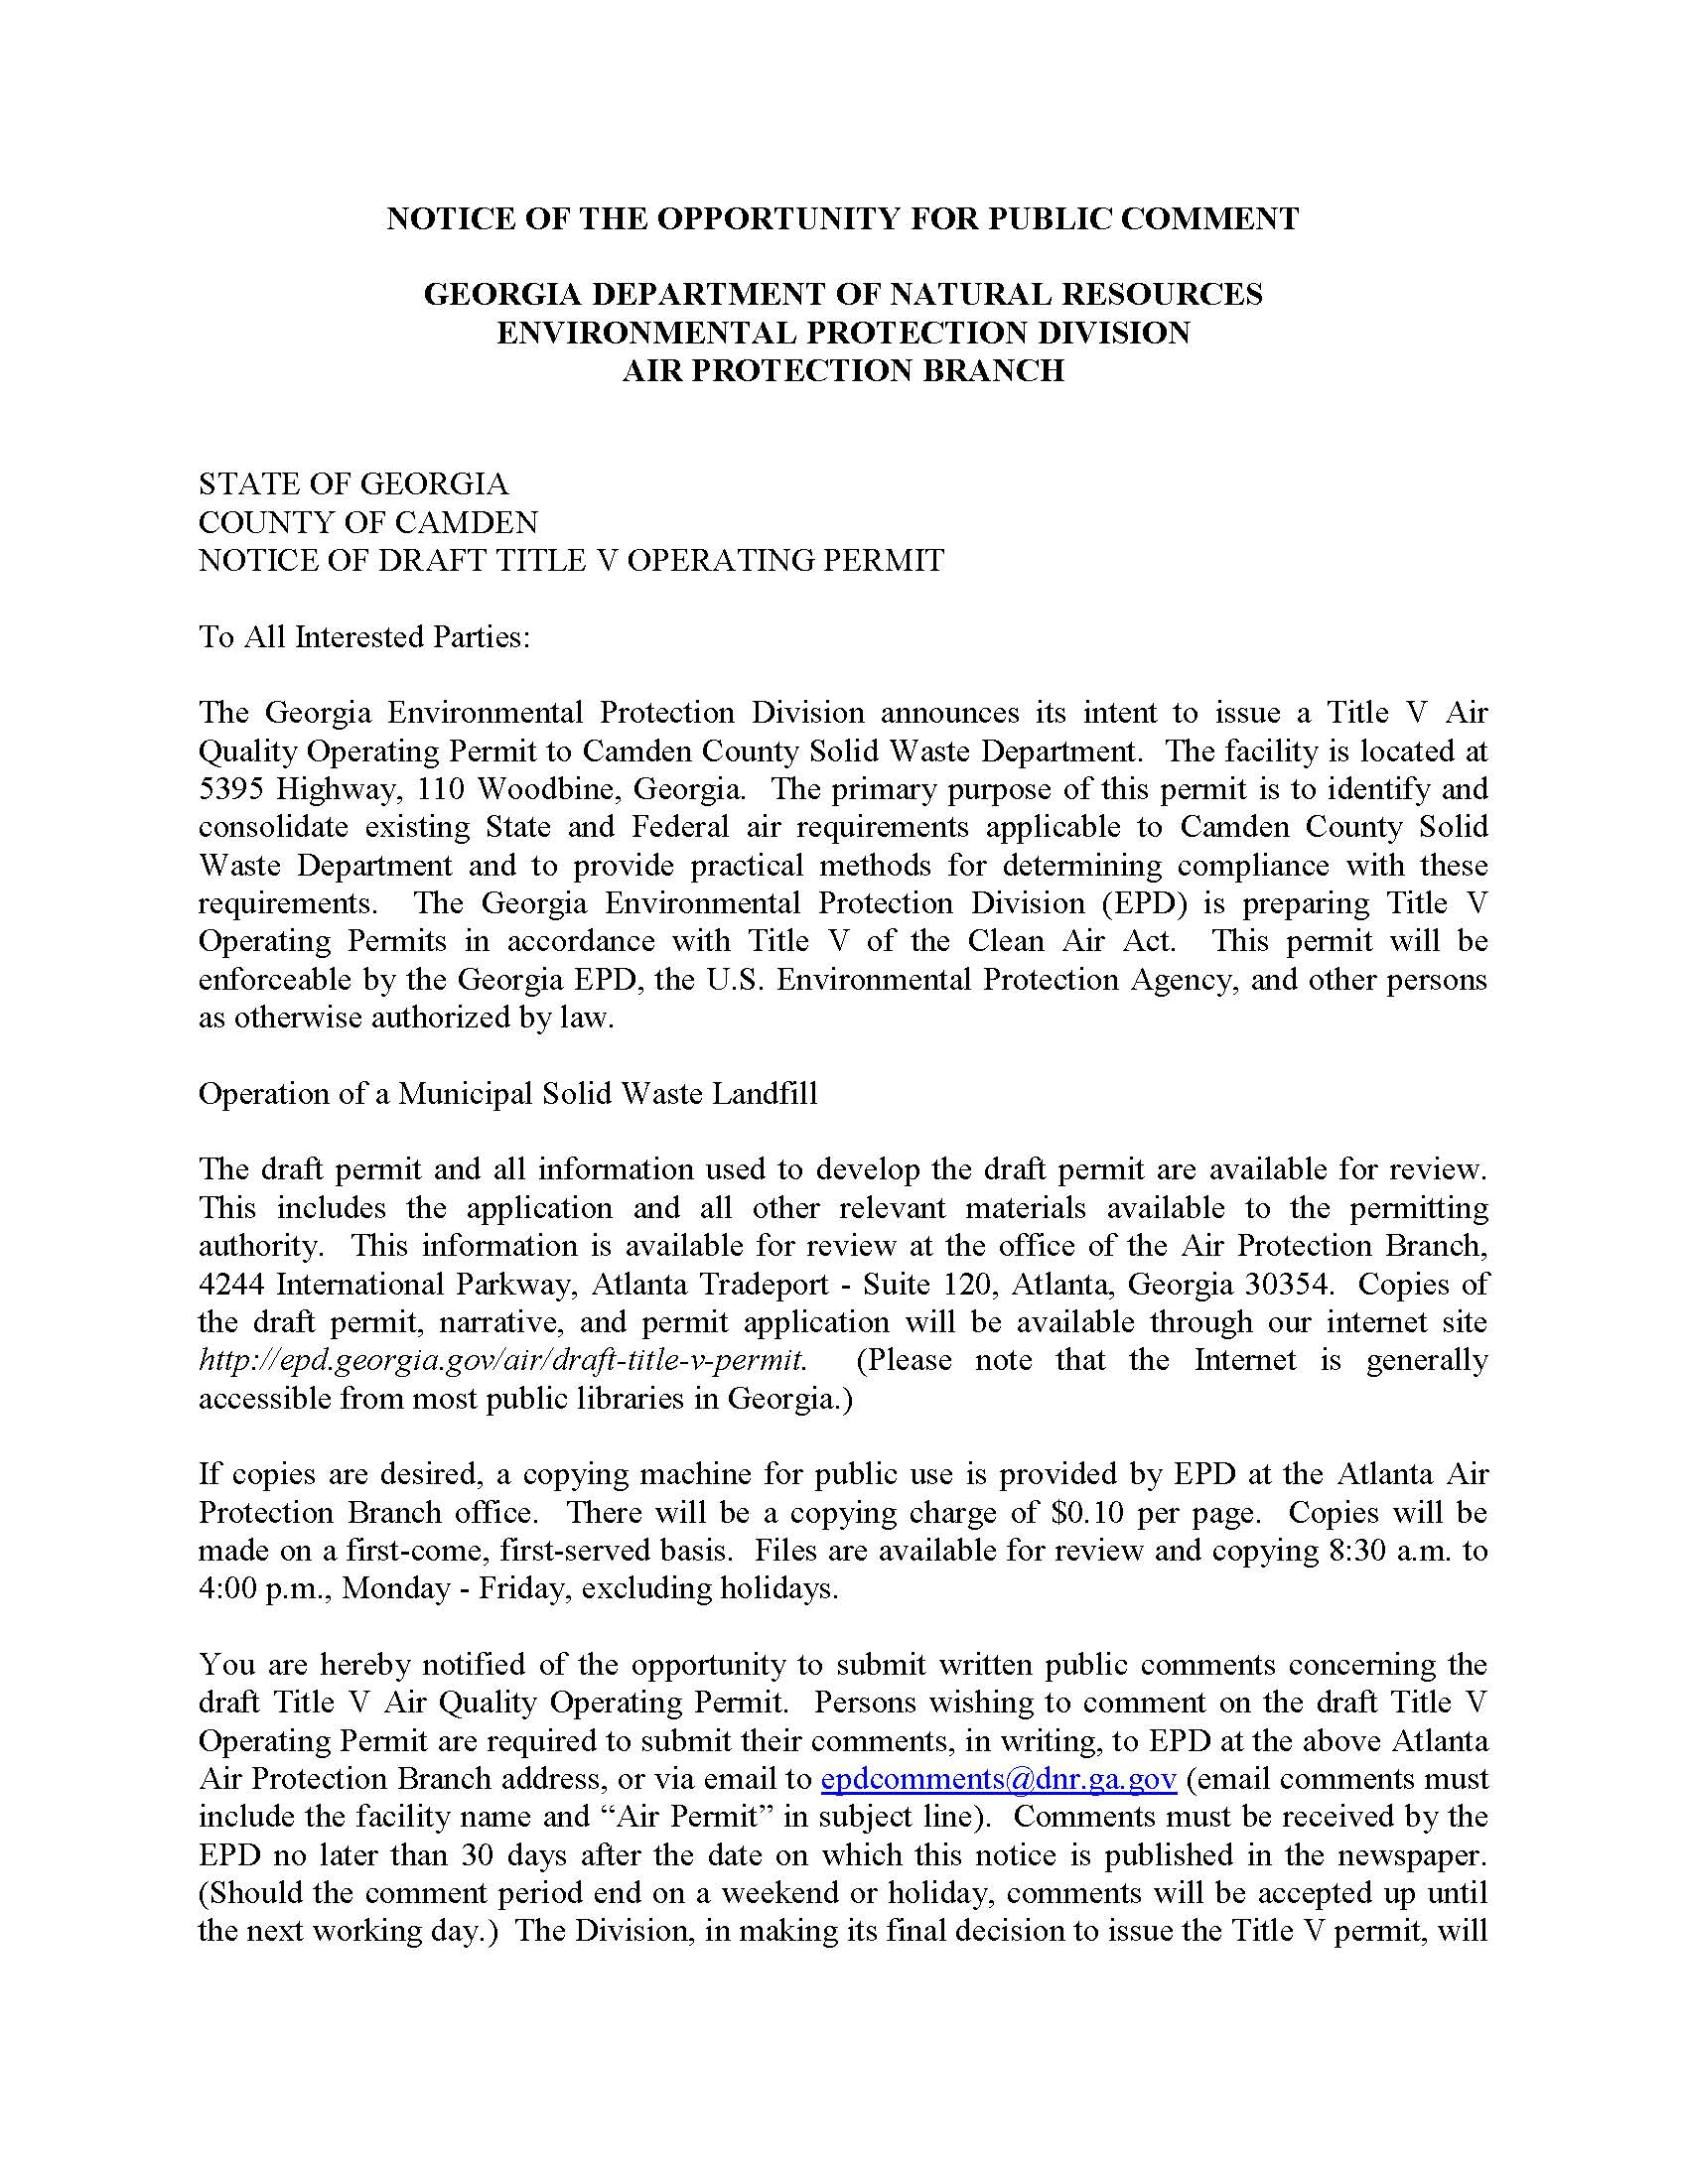 Notice - Title V Air Quality Public Comment